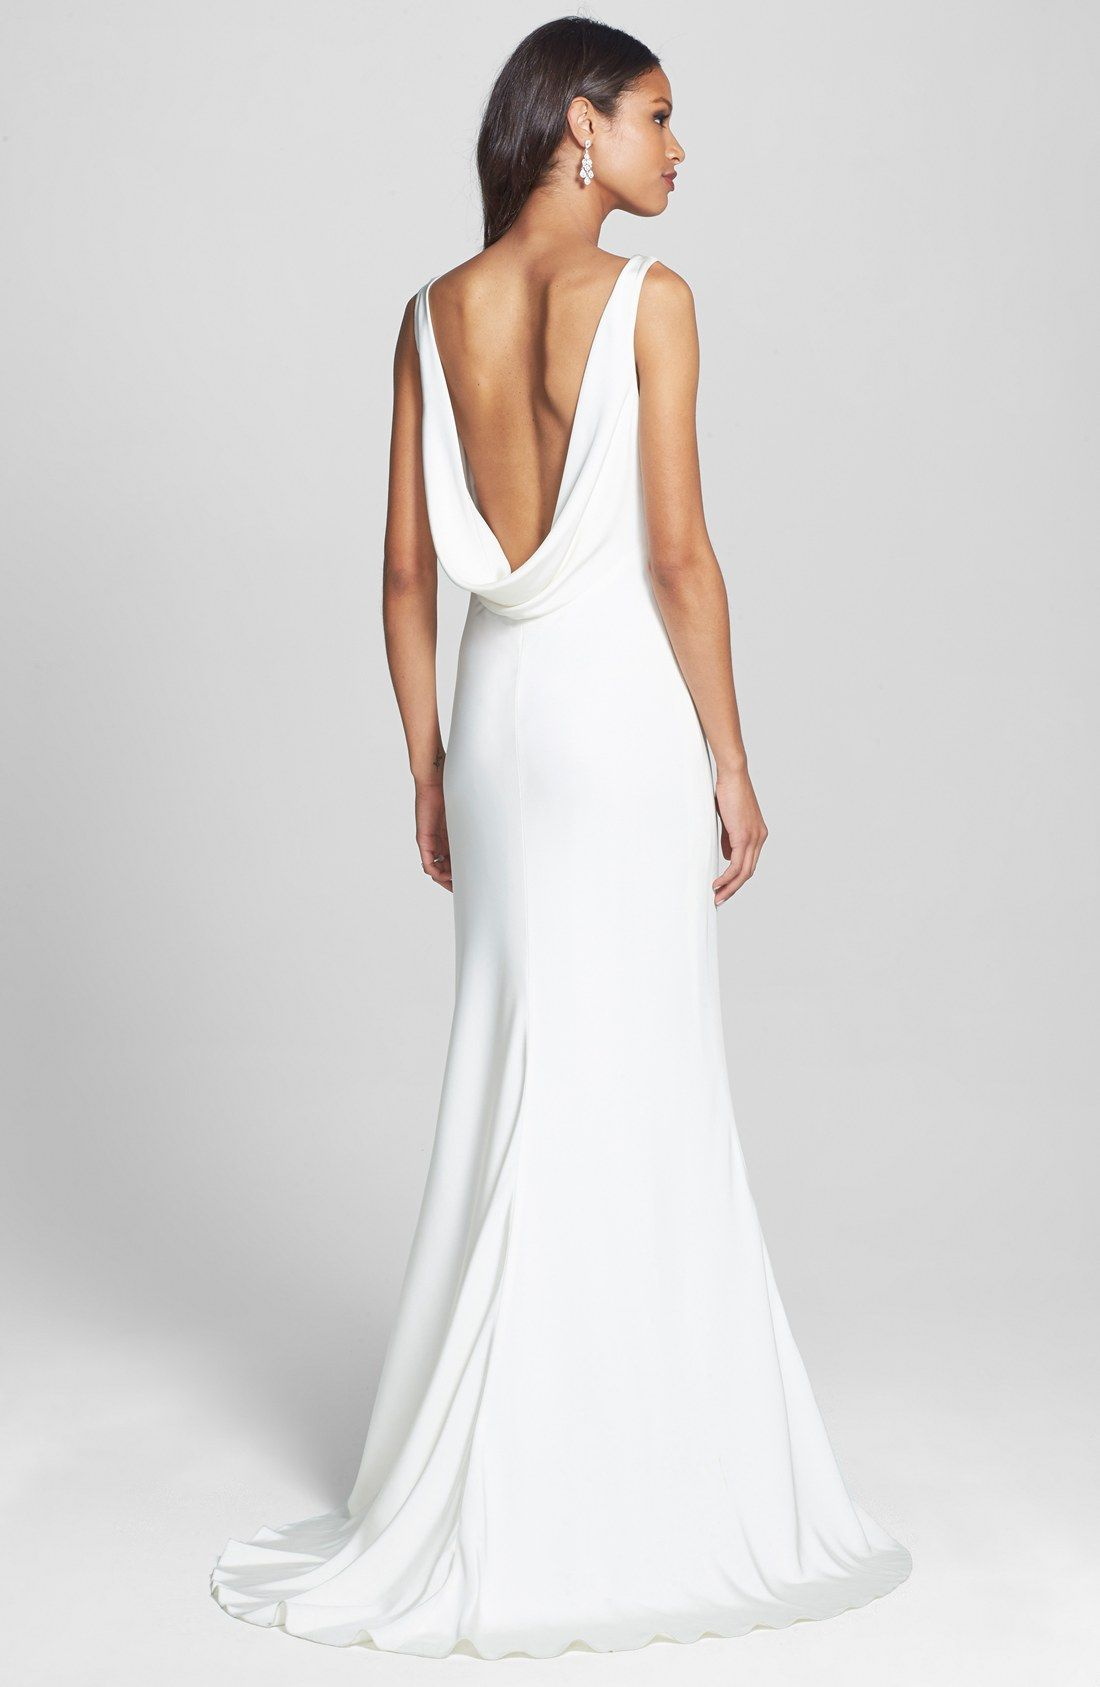 The neckline on this wedding gown is stunning!  d75a66be8cb1